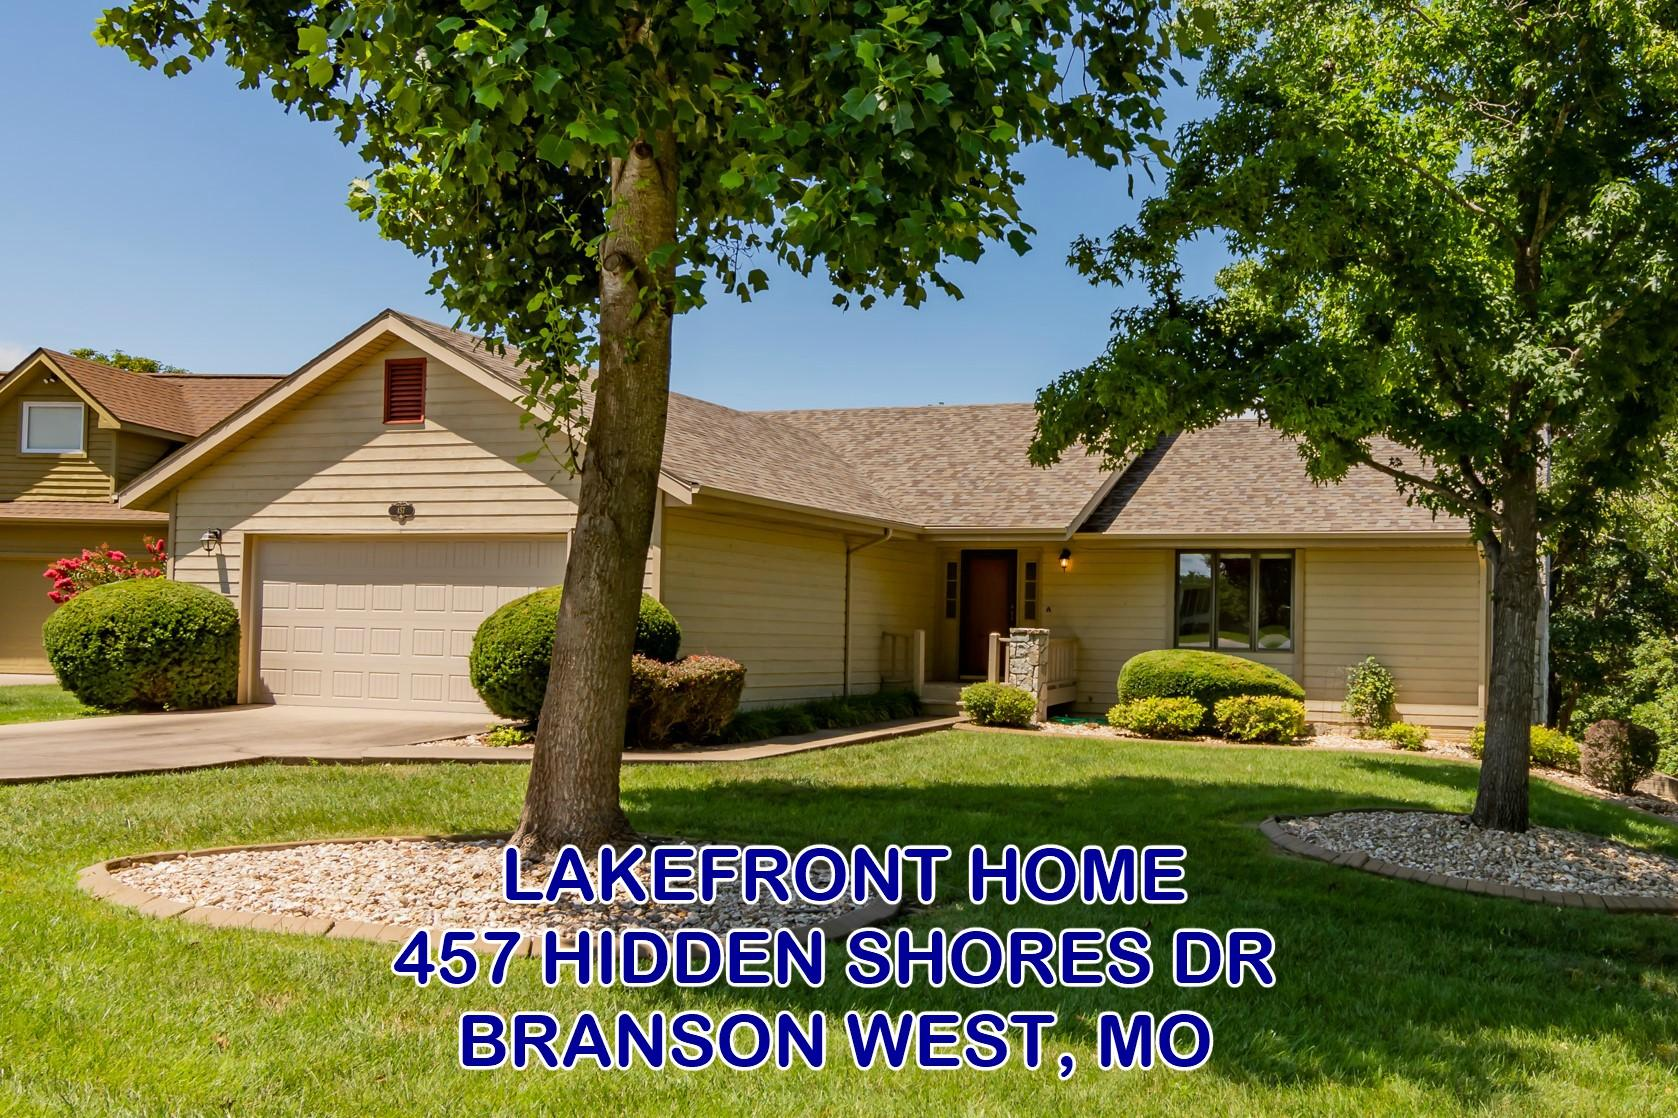 457 Hidden Shores Drive Branson West, MO 65737